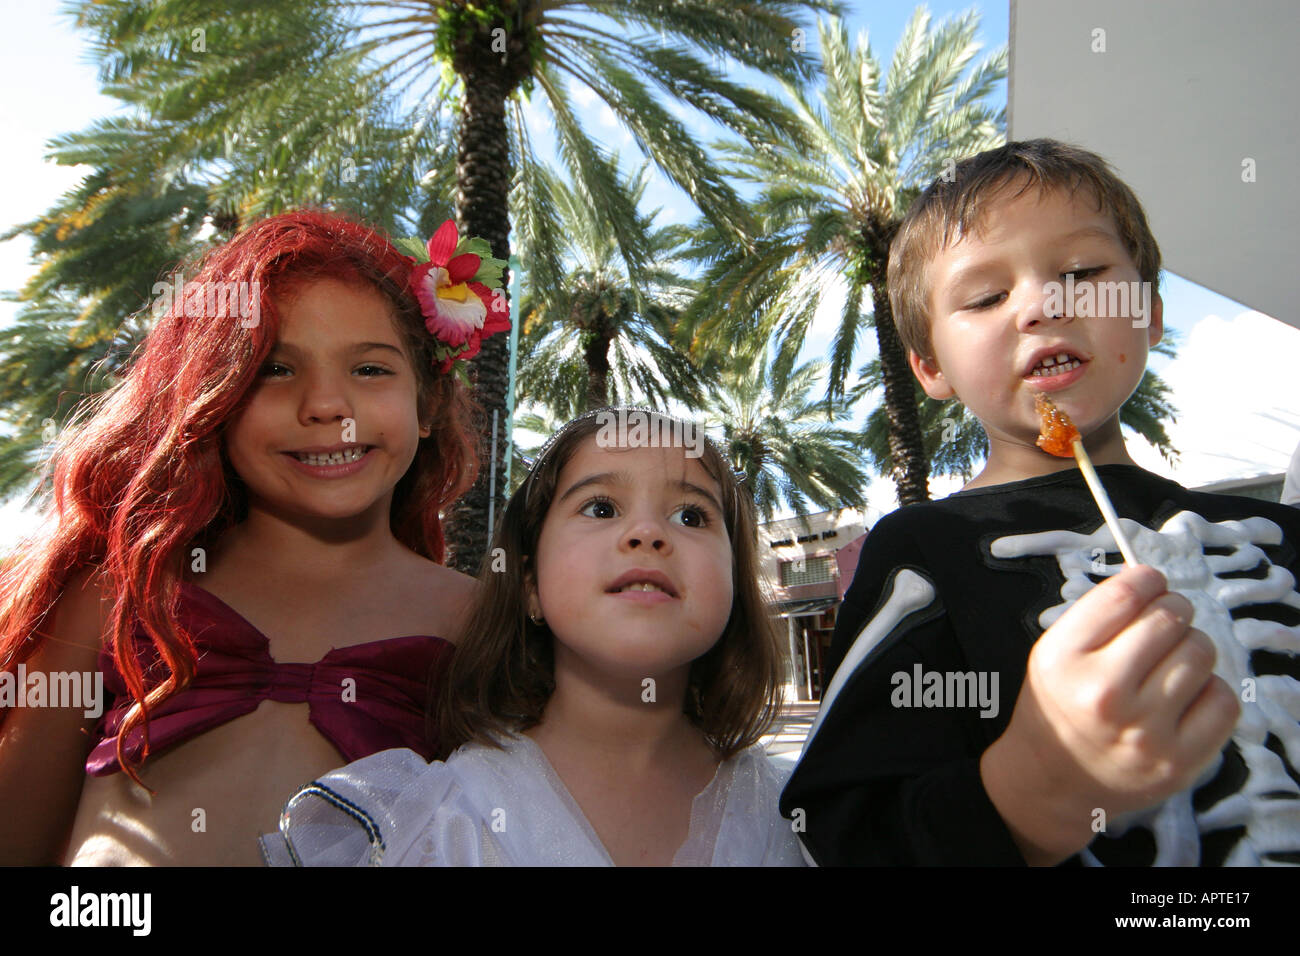 miami beach florida lincoln road hispanic children girls boy stock